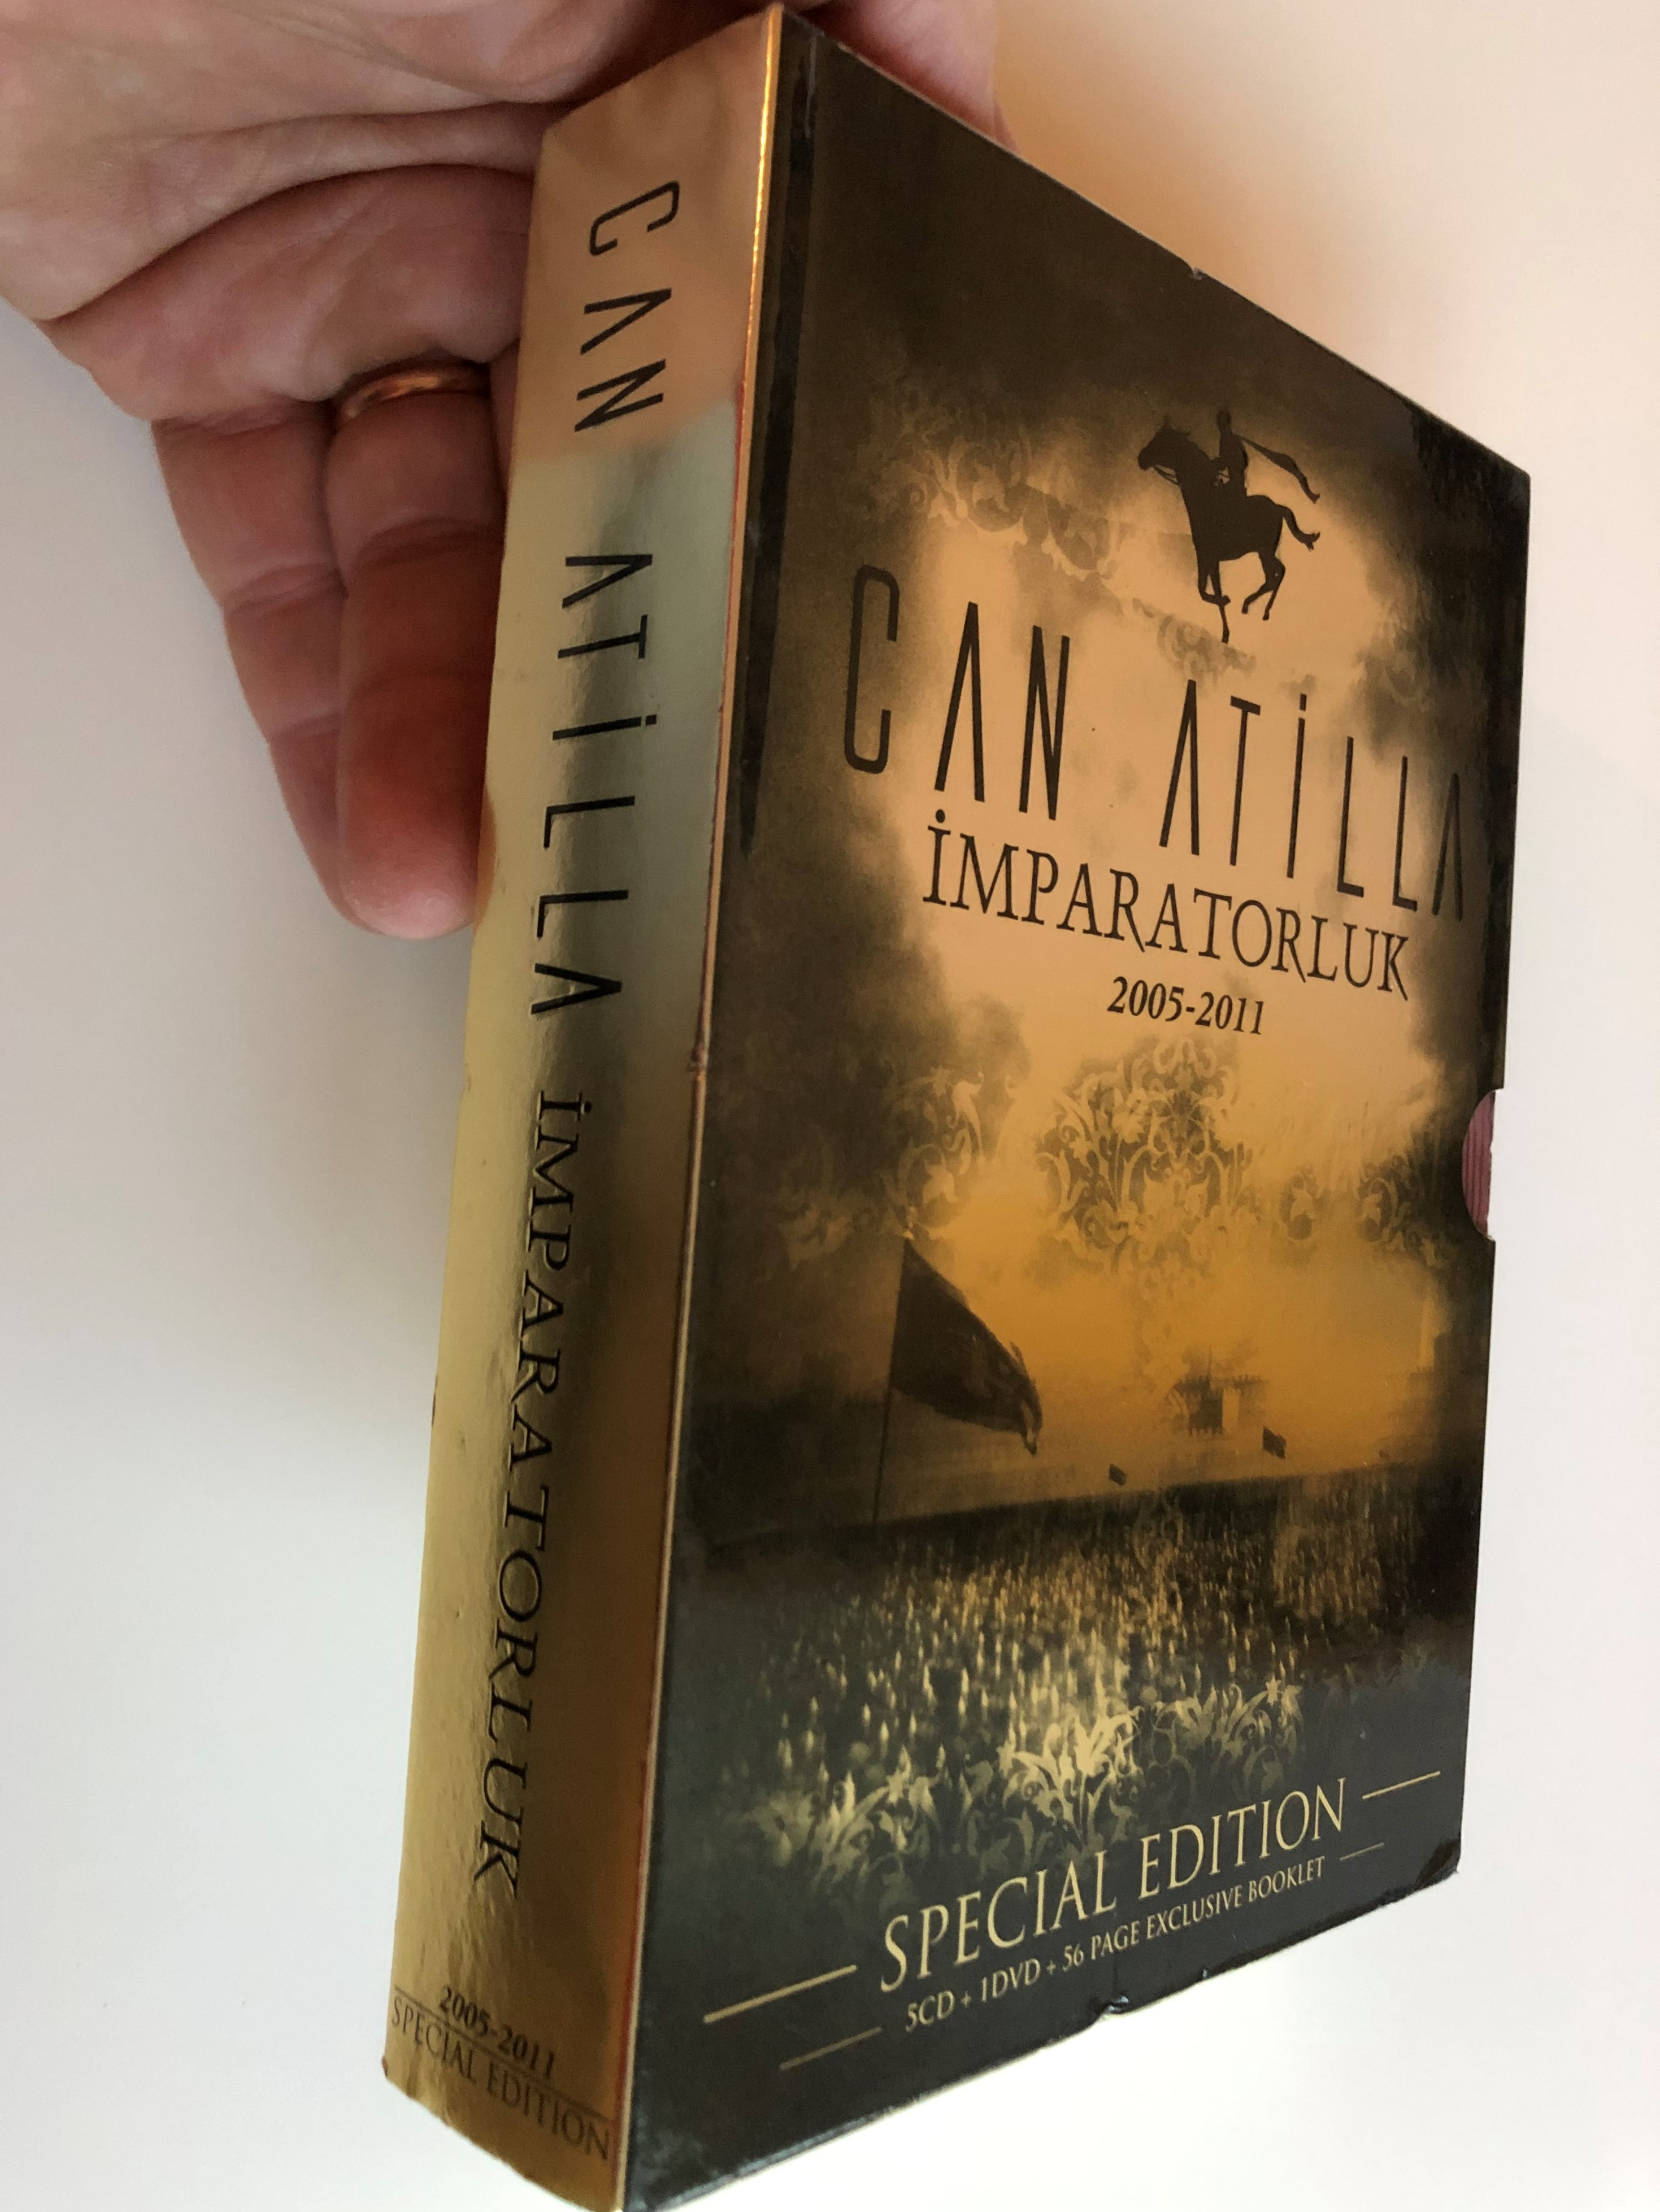 can-atilla-imparatorluk-2005-2011-the-empire-special-edition-5-cd-1-dvd-56-pg-exclusive-booklet-sony-music-2-.jpg